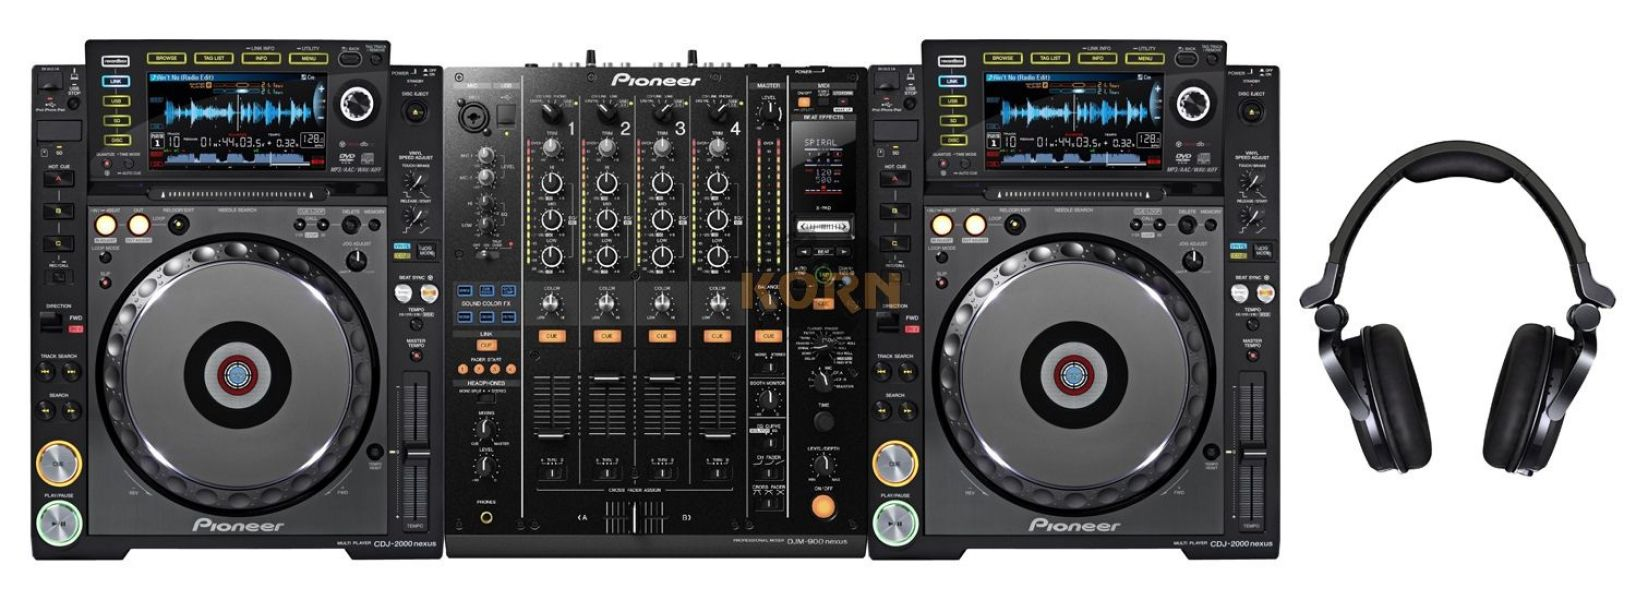 2X PIONEER CDJ-350 Turntable + DJM-350 Mixer....$1,100